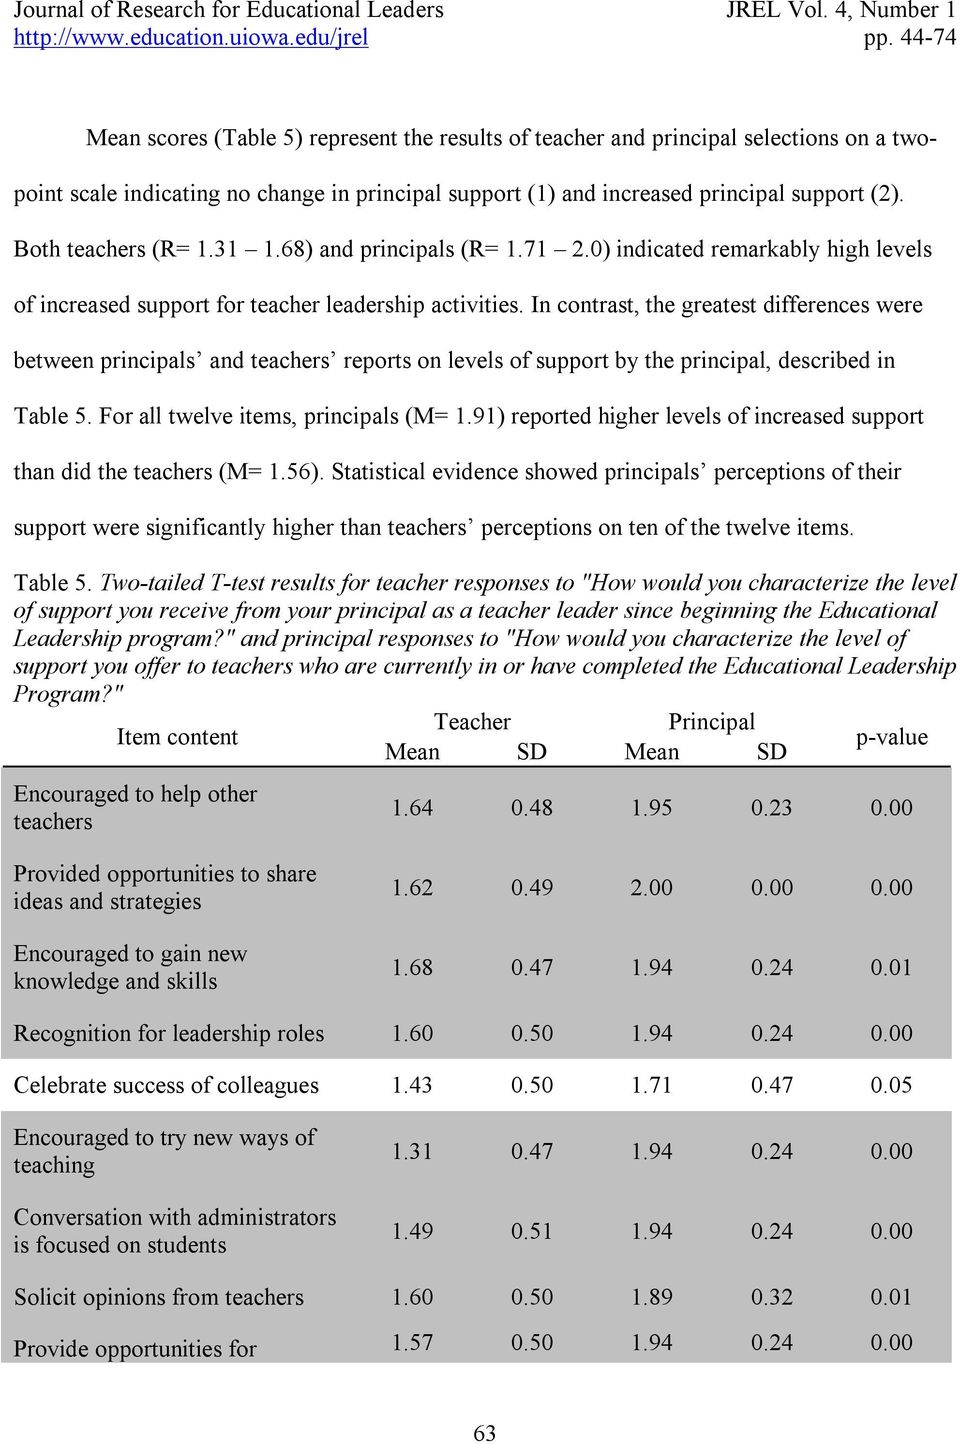 In contrast, the greatest differences were between principals and teachers reports on levels of support by the principal, described in Table 5. For all twelve items, principals (M= 1.